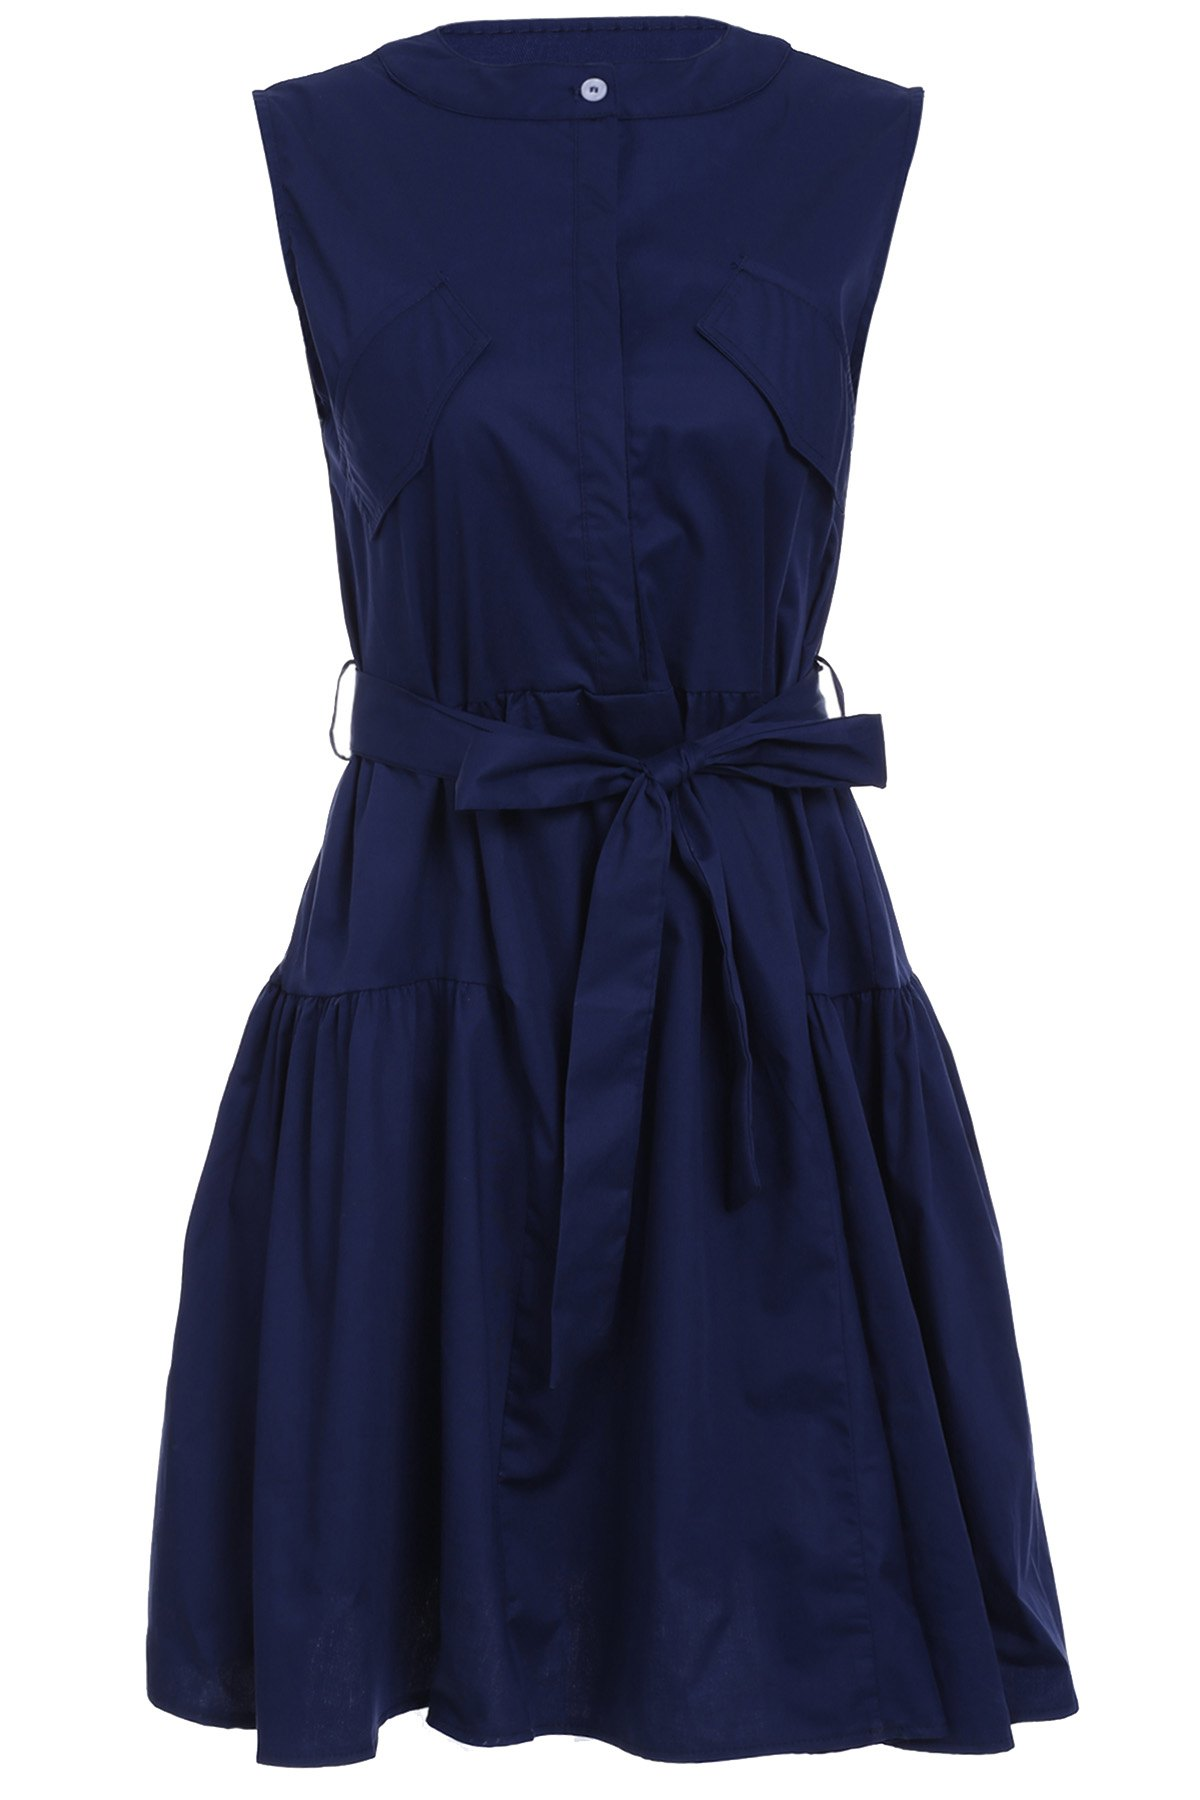 Trendy Sleeveless Pure Color Belted Dress For Women - DEEP BLUE L